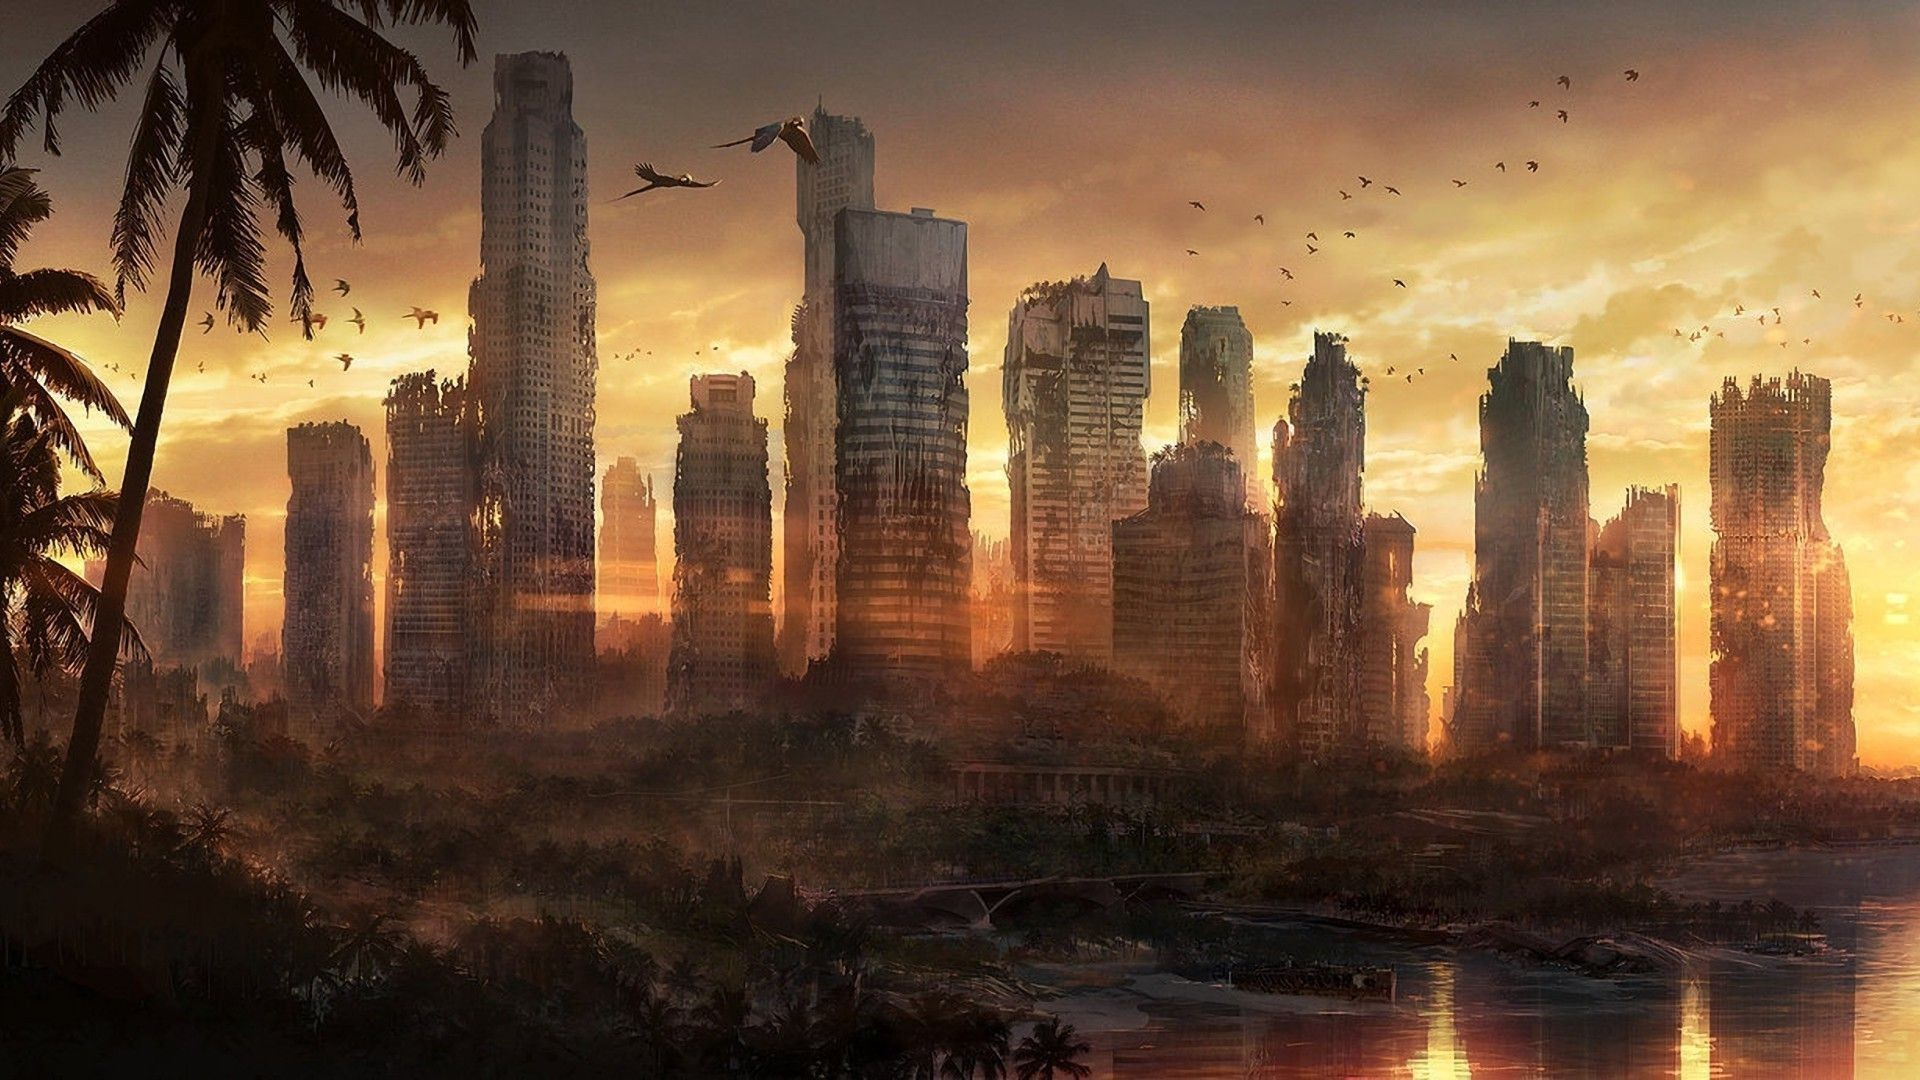 Post Apocalyptic Wallpaper | Photo Wallpapers – Wallpaper Zone